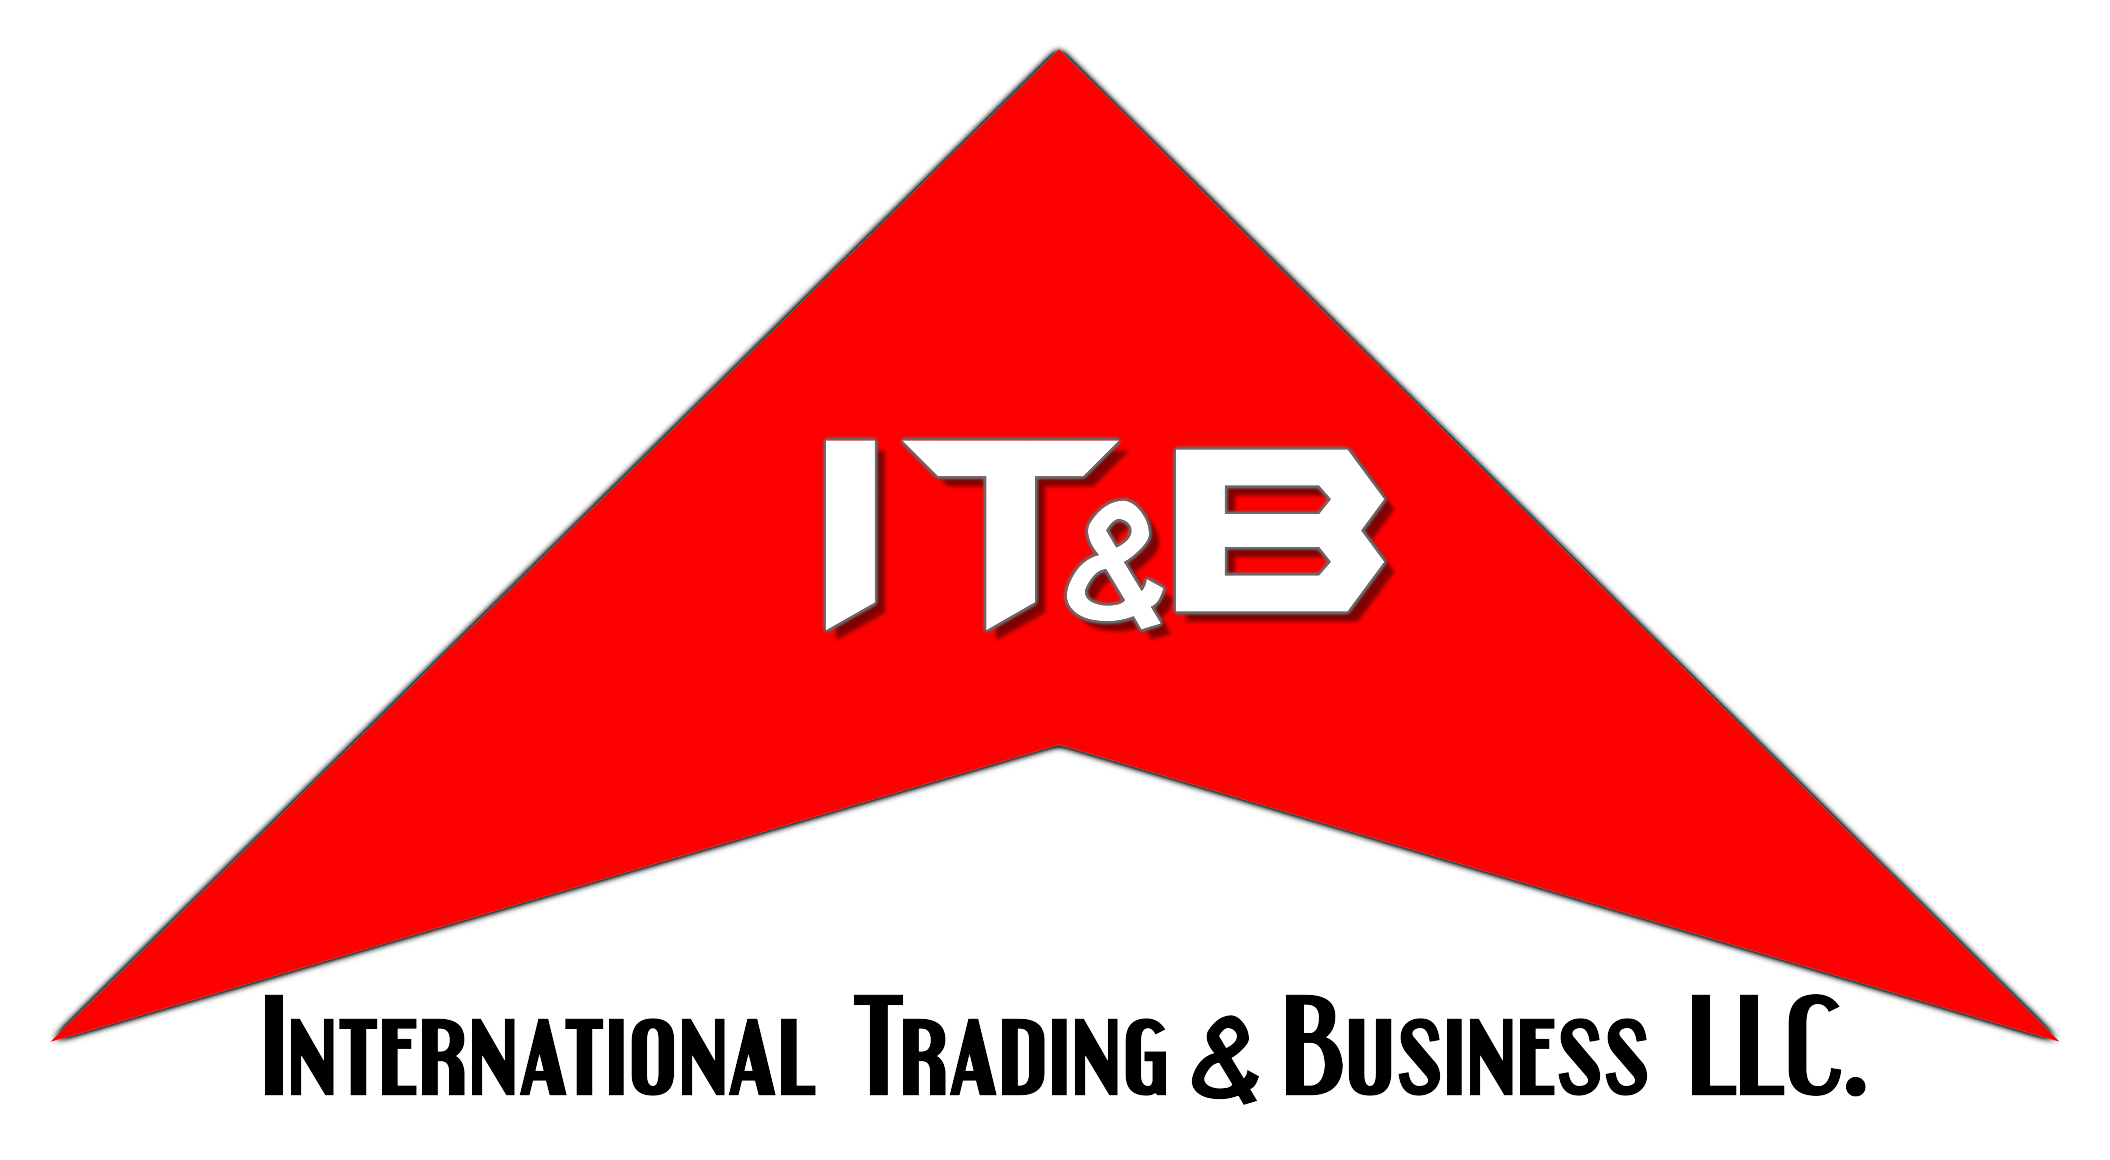 International Trading & Business Llc.